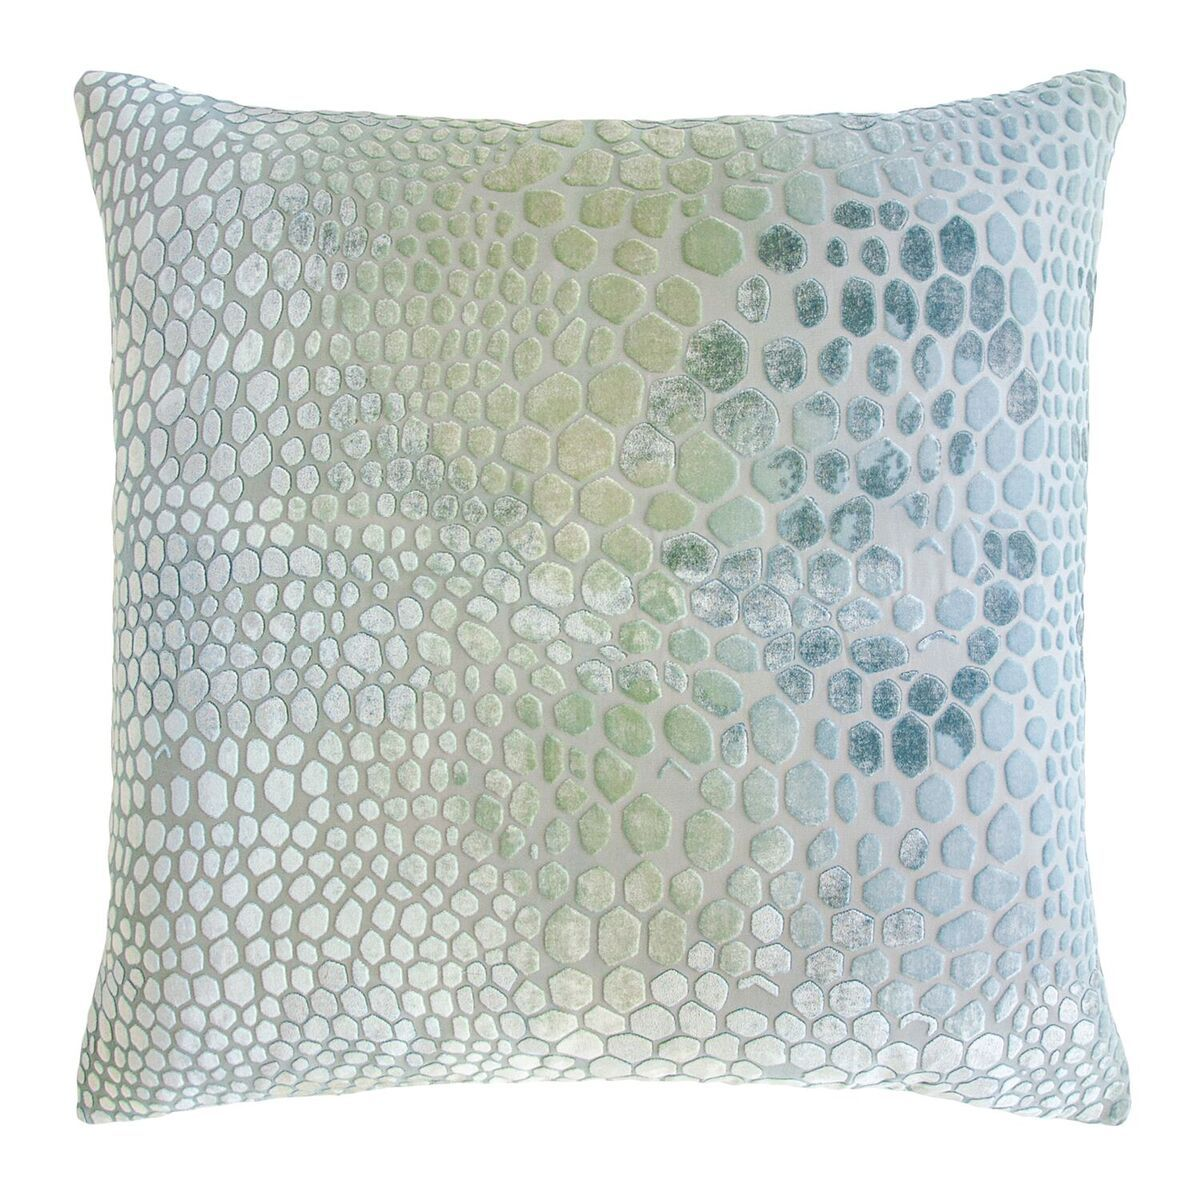 Ice Snakeskin Velvet Pillows by Kevin O'Brien Studio | Fig Linens